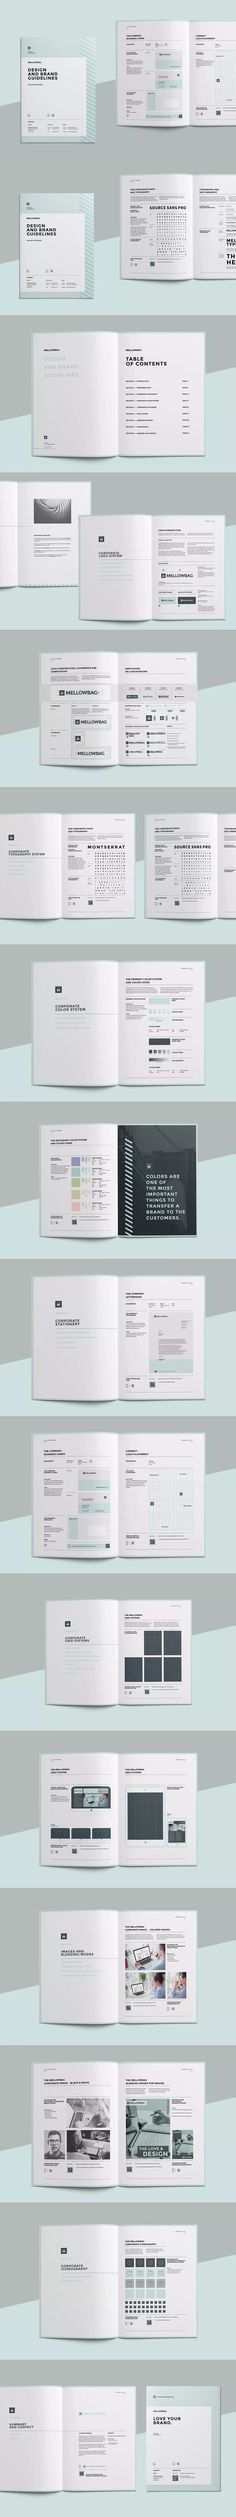 Brand Manual Guideline Brochure Template InDesign INDD - A4 and US Letter Size